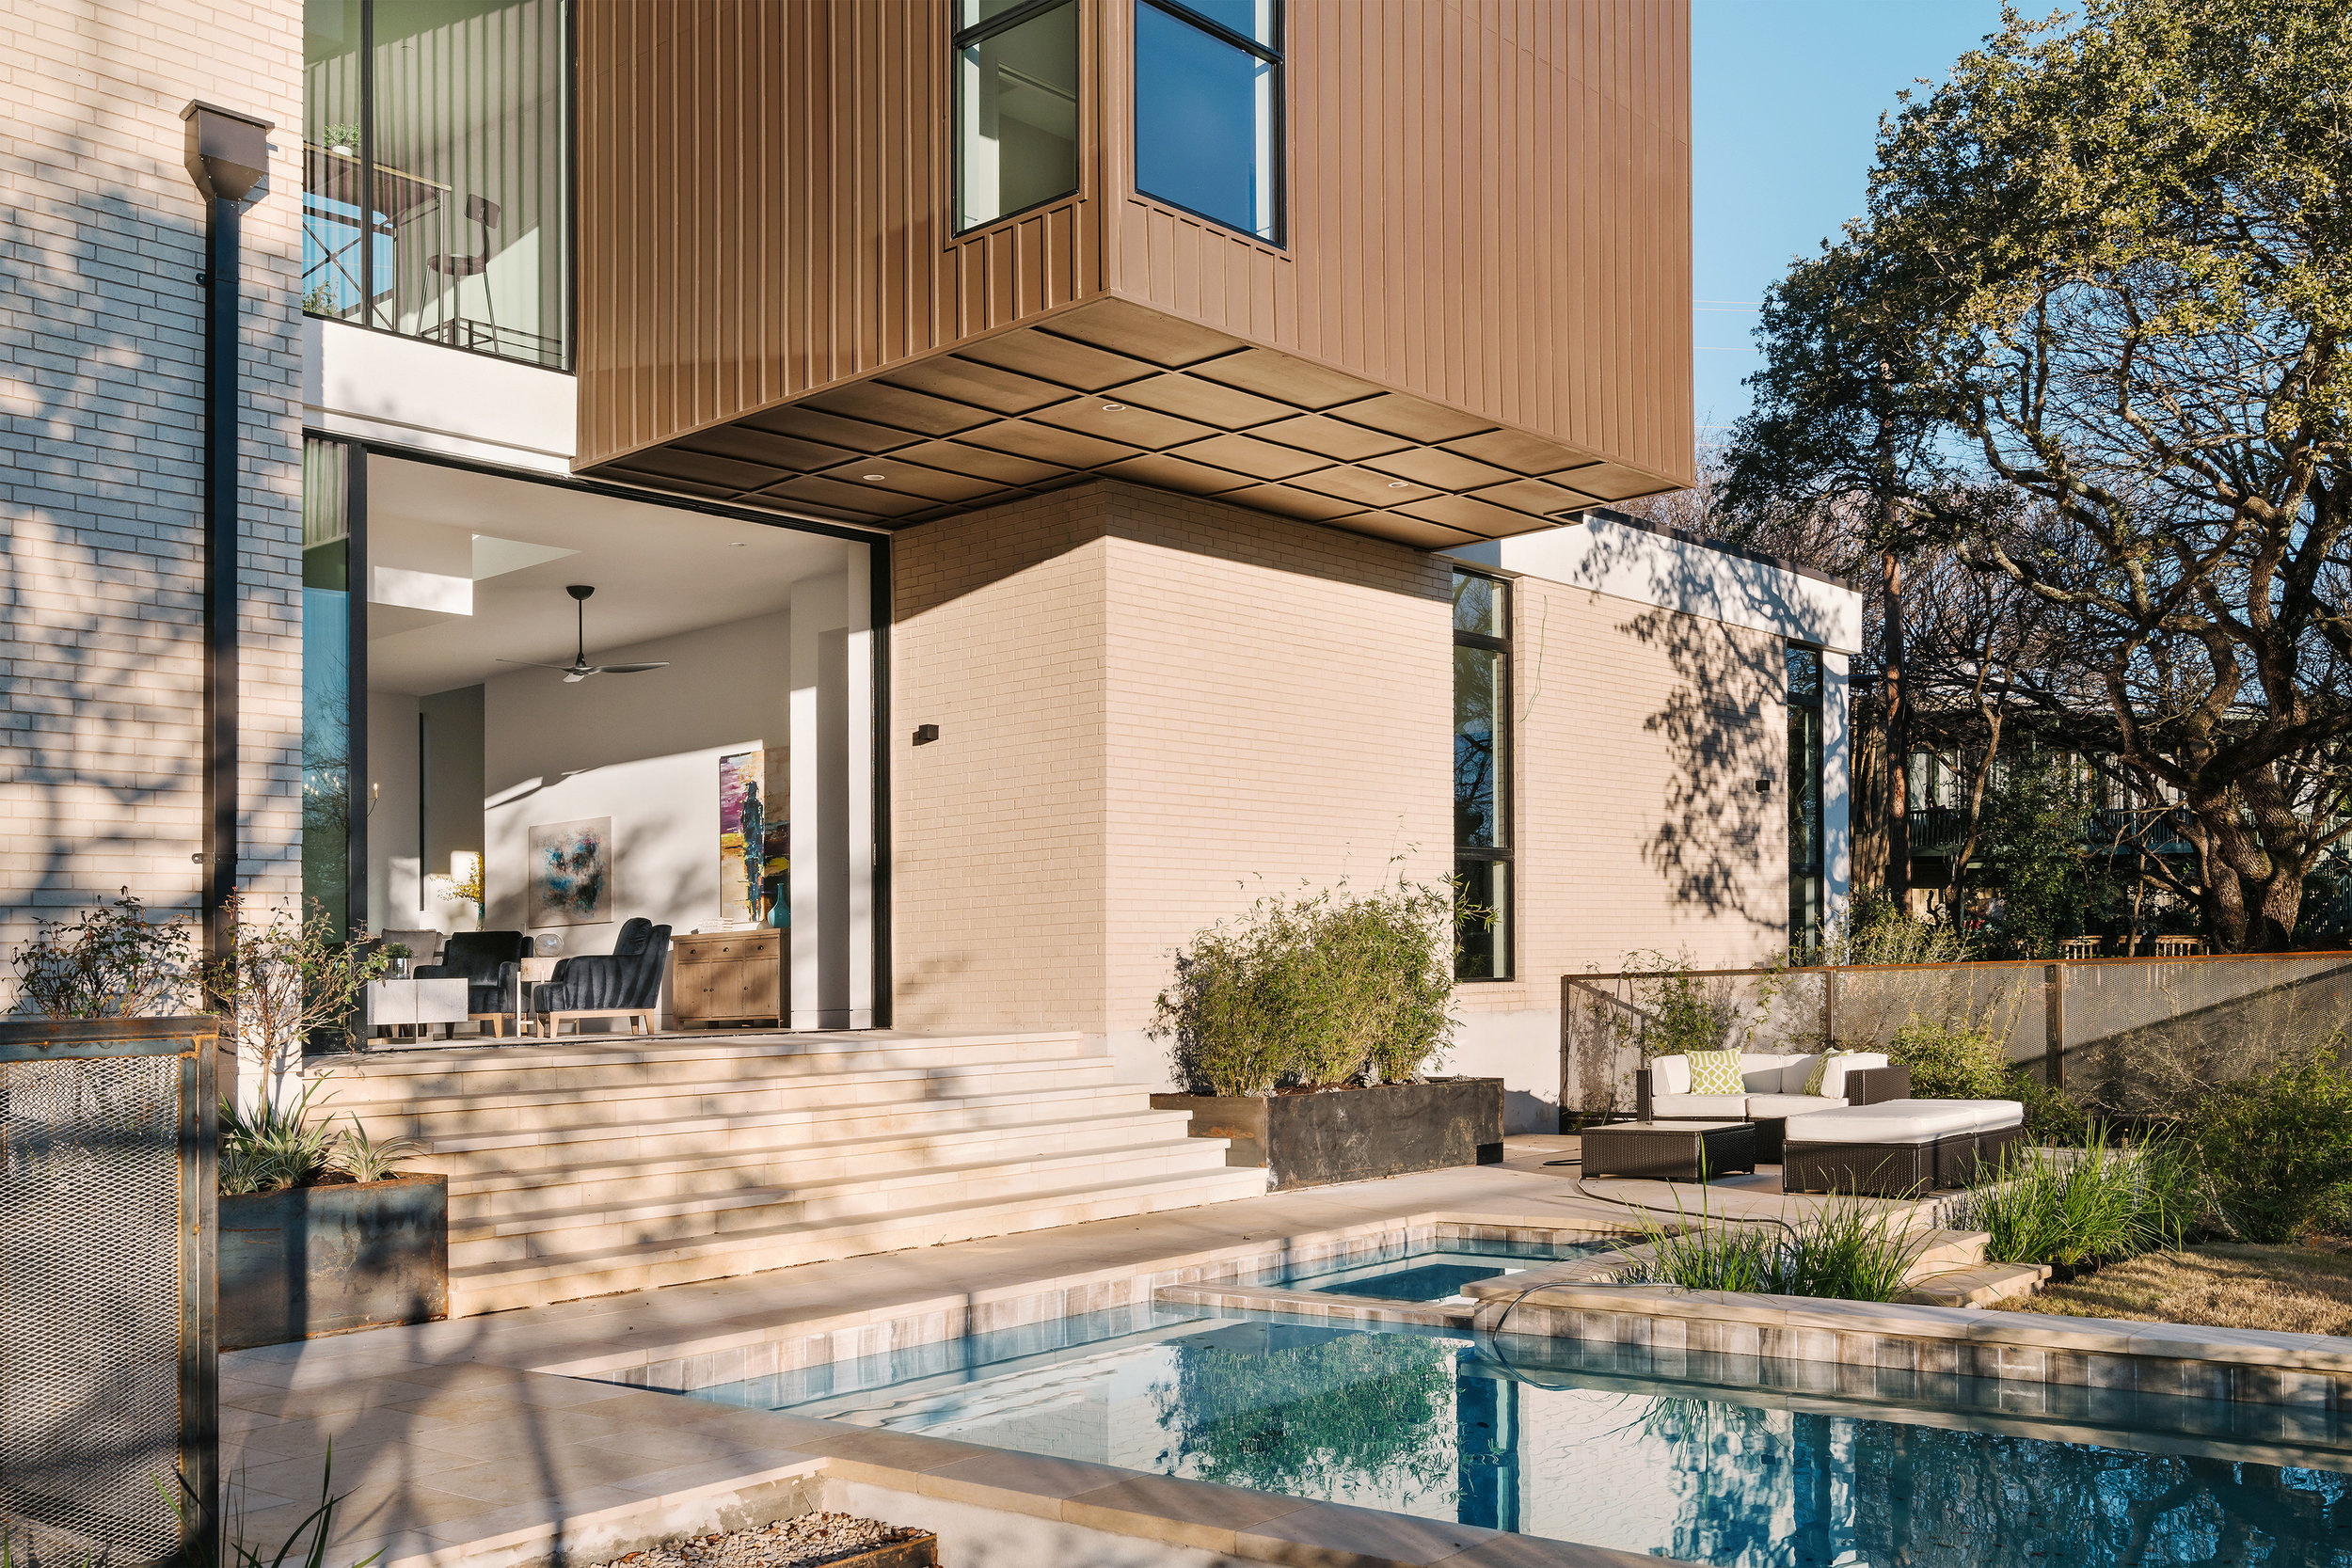 10 Allotted Space House by Matt Fajkus Architecture. Photo by Chase Daniel.jpg